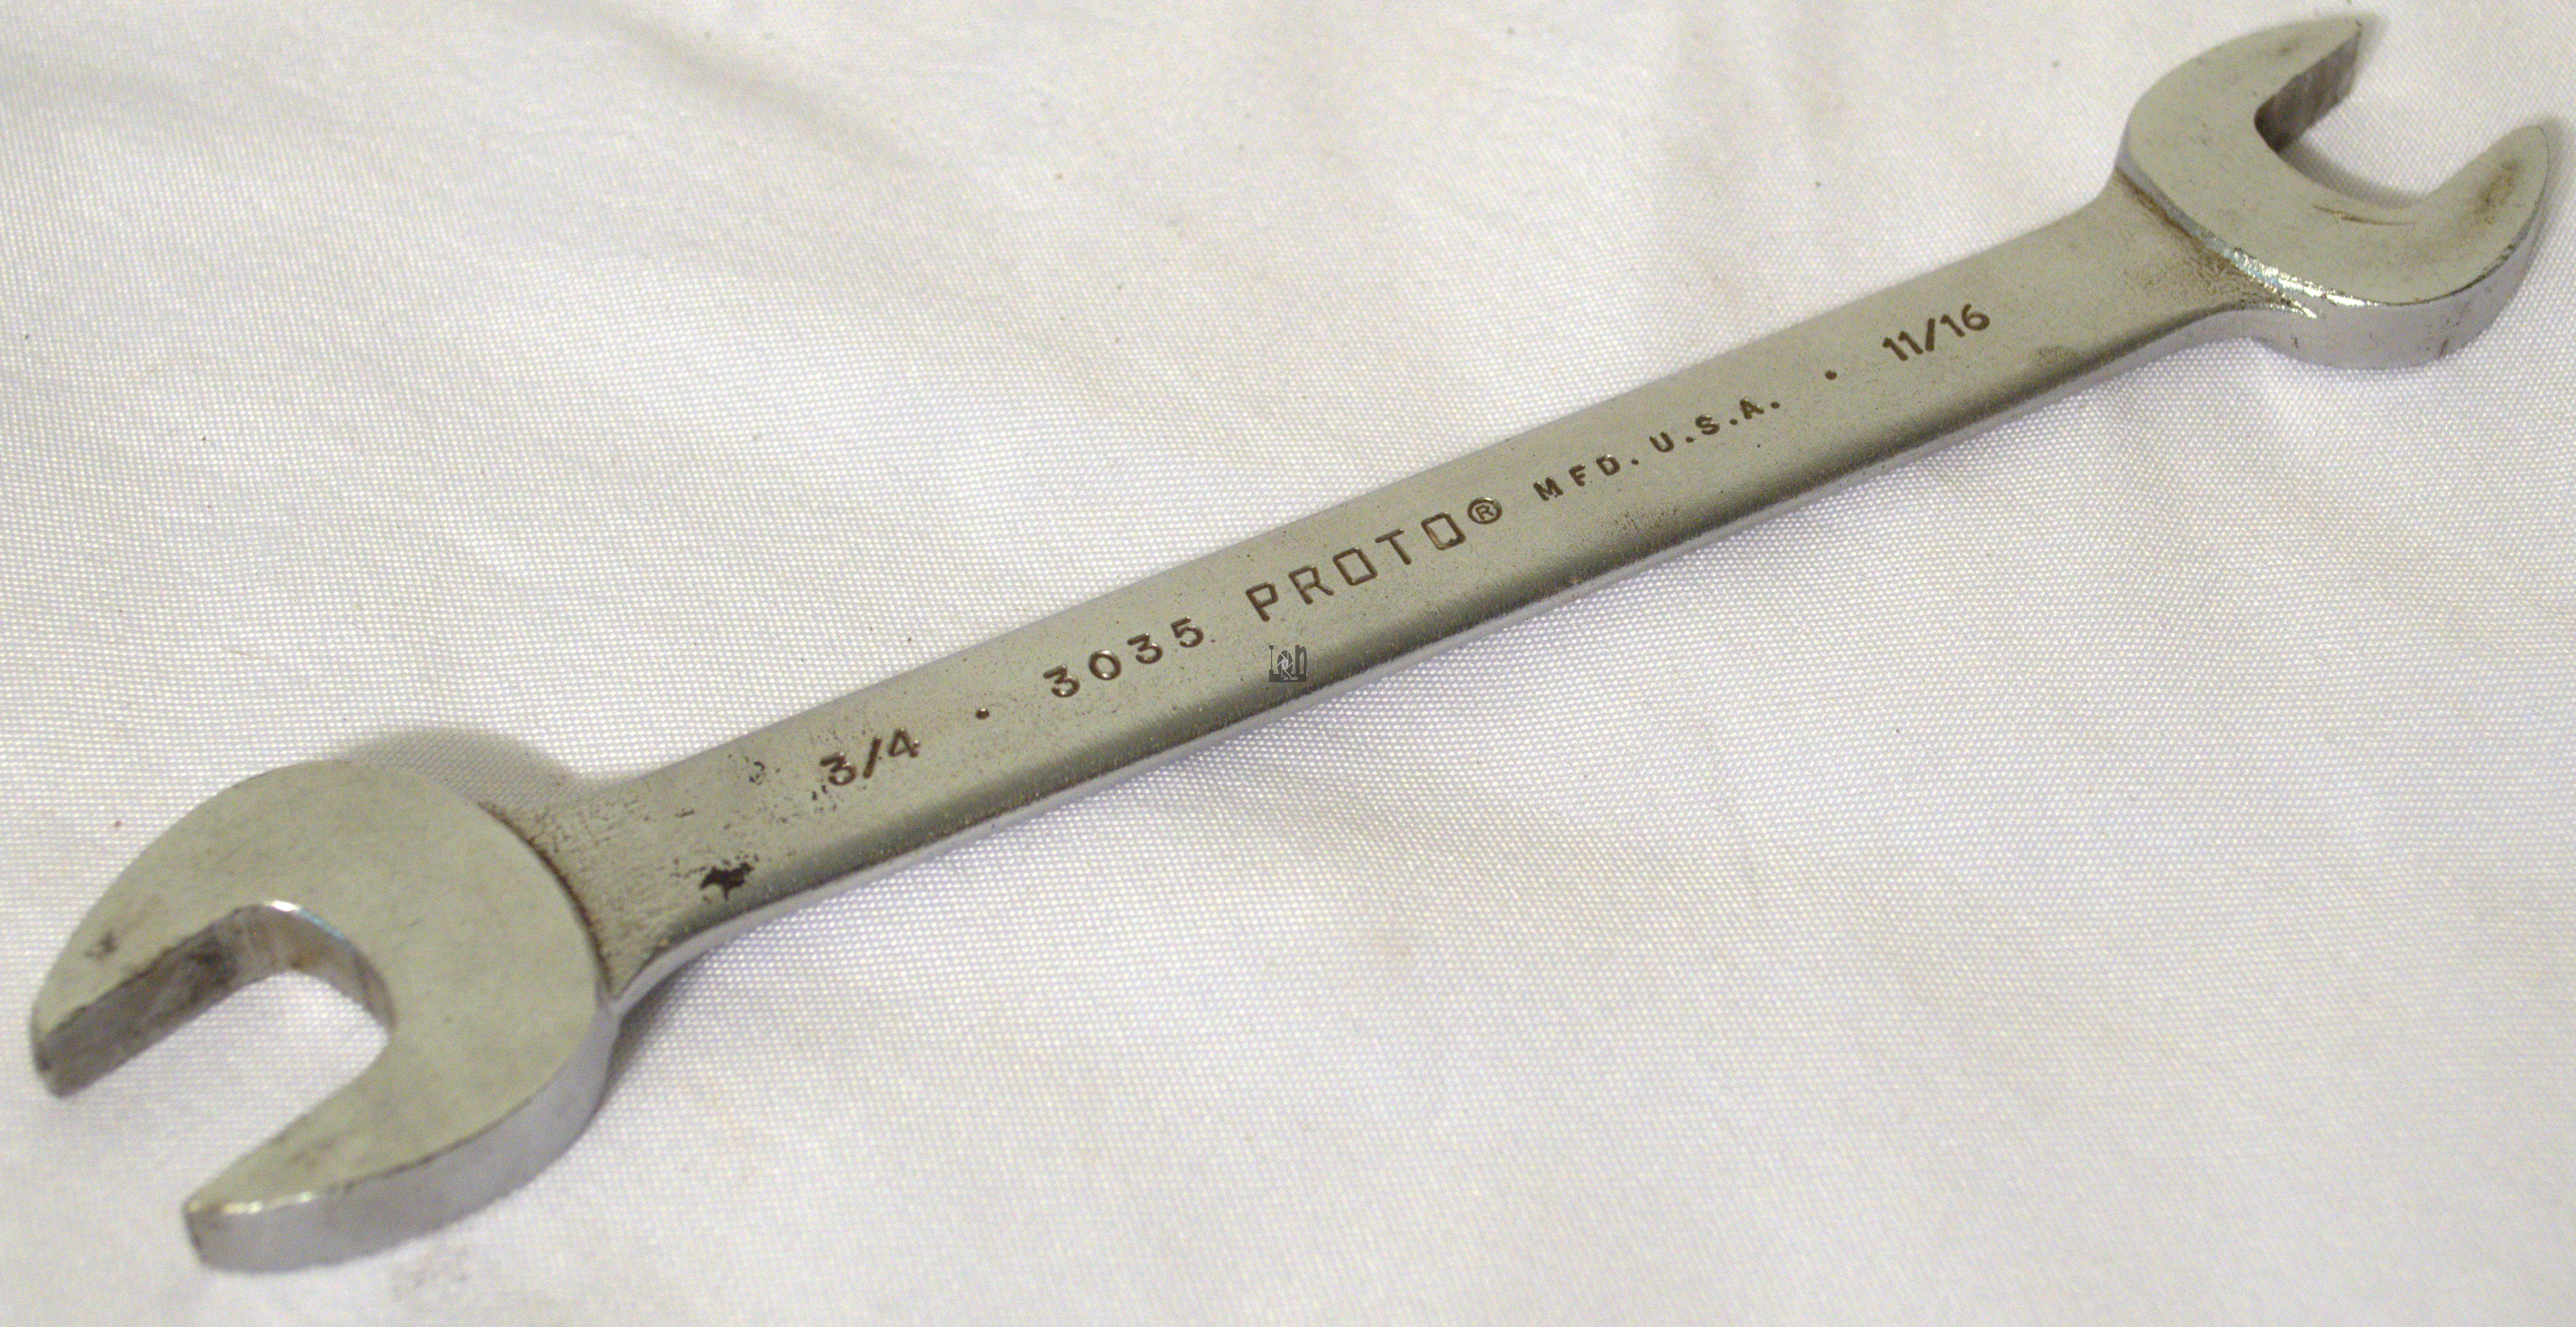 Used Proto Professional Wrench 3035 USA 3/4 x 11/16 SAE OPEN